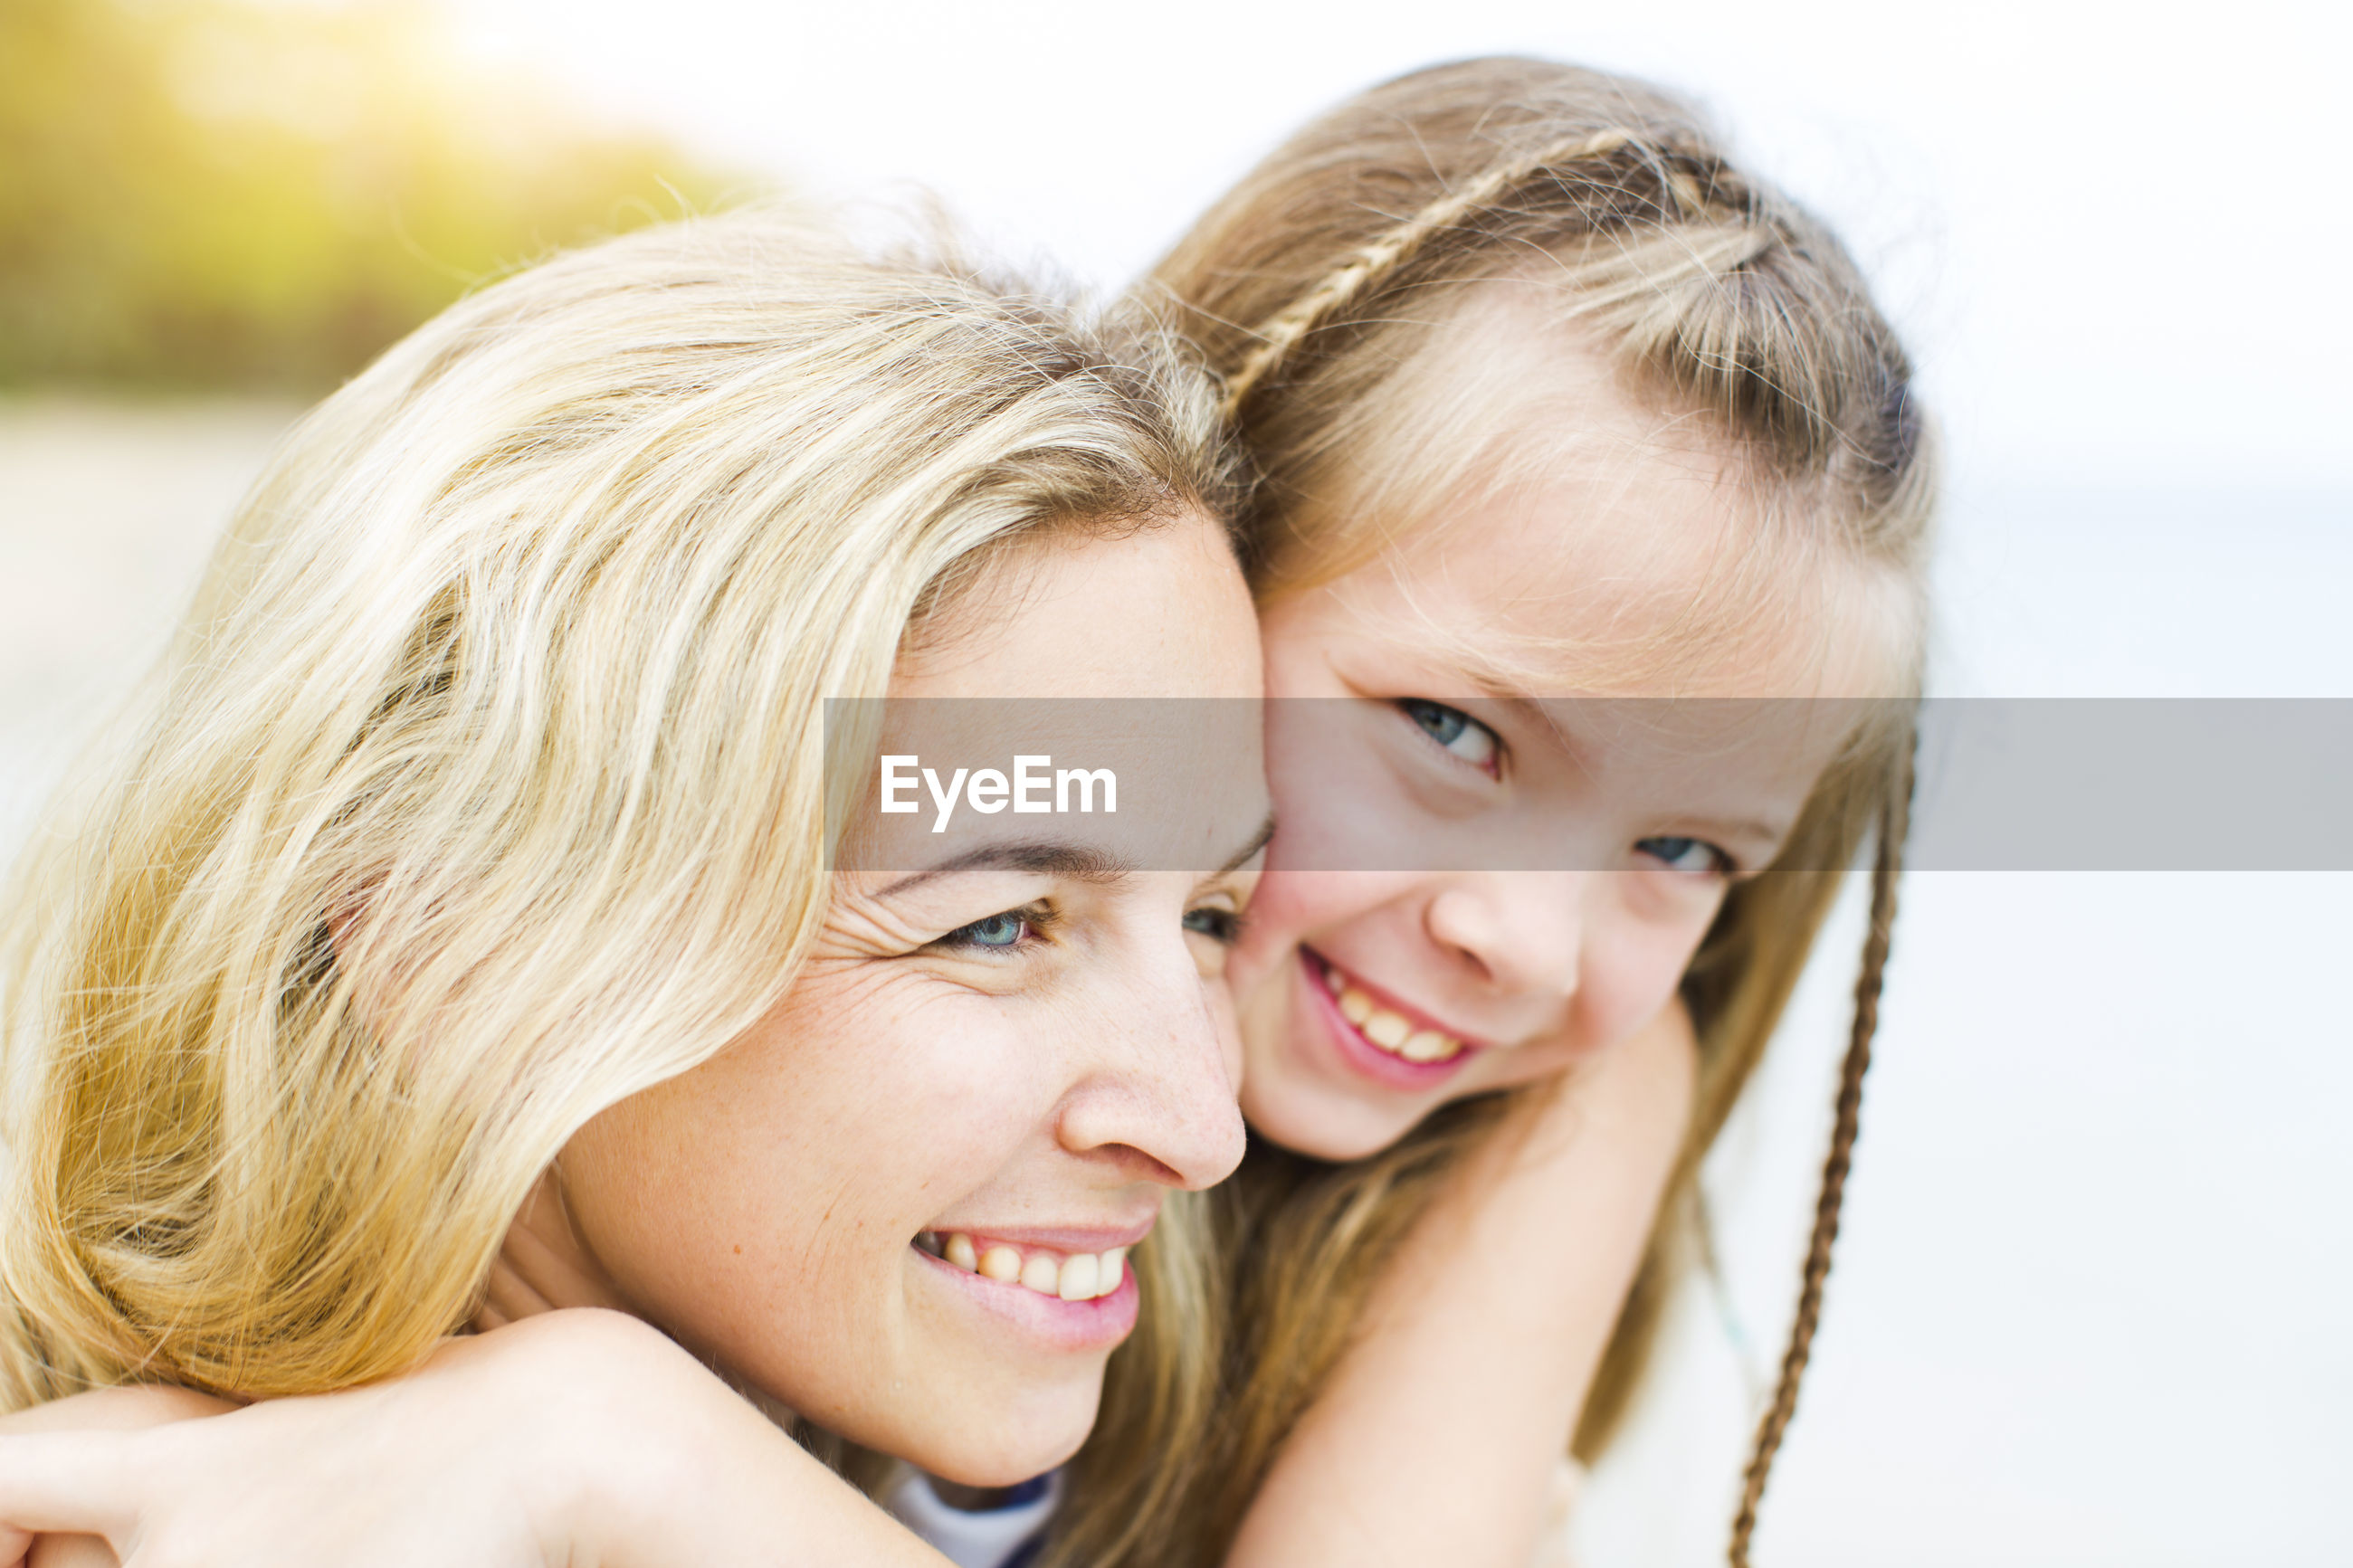 Close-up portrait of smiling girl with mother at beach